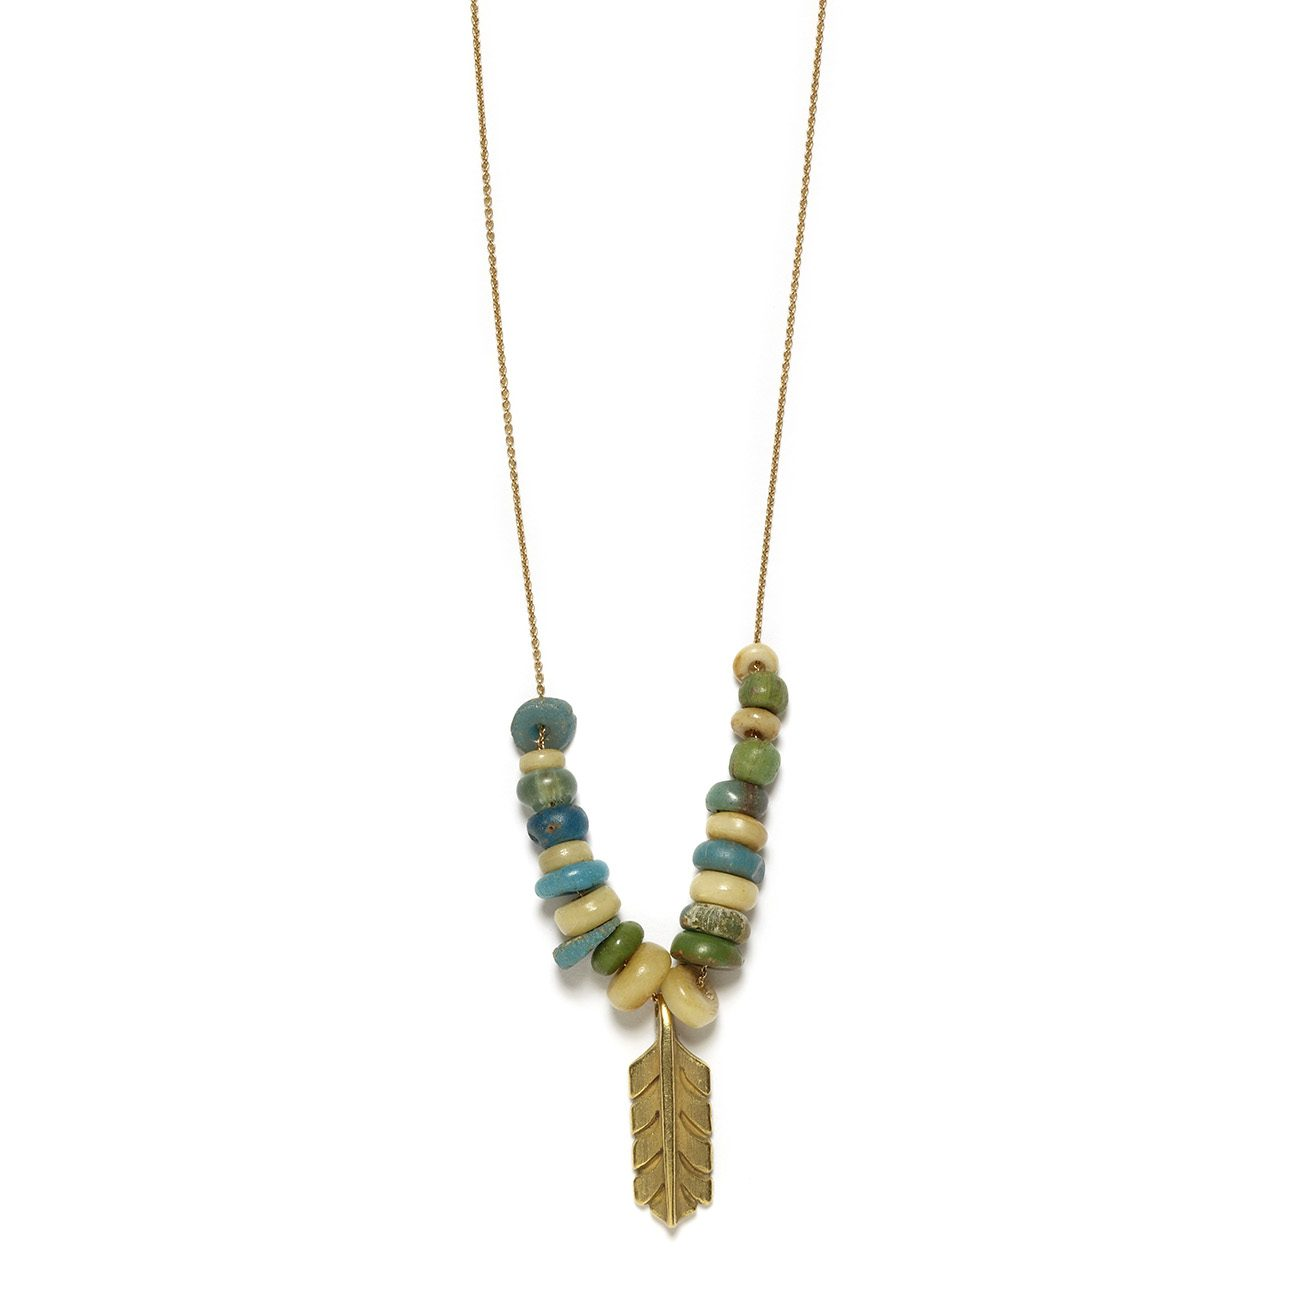 Feather Necklace With Beads Elisa Solomon Jewelry